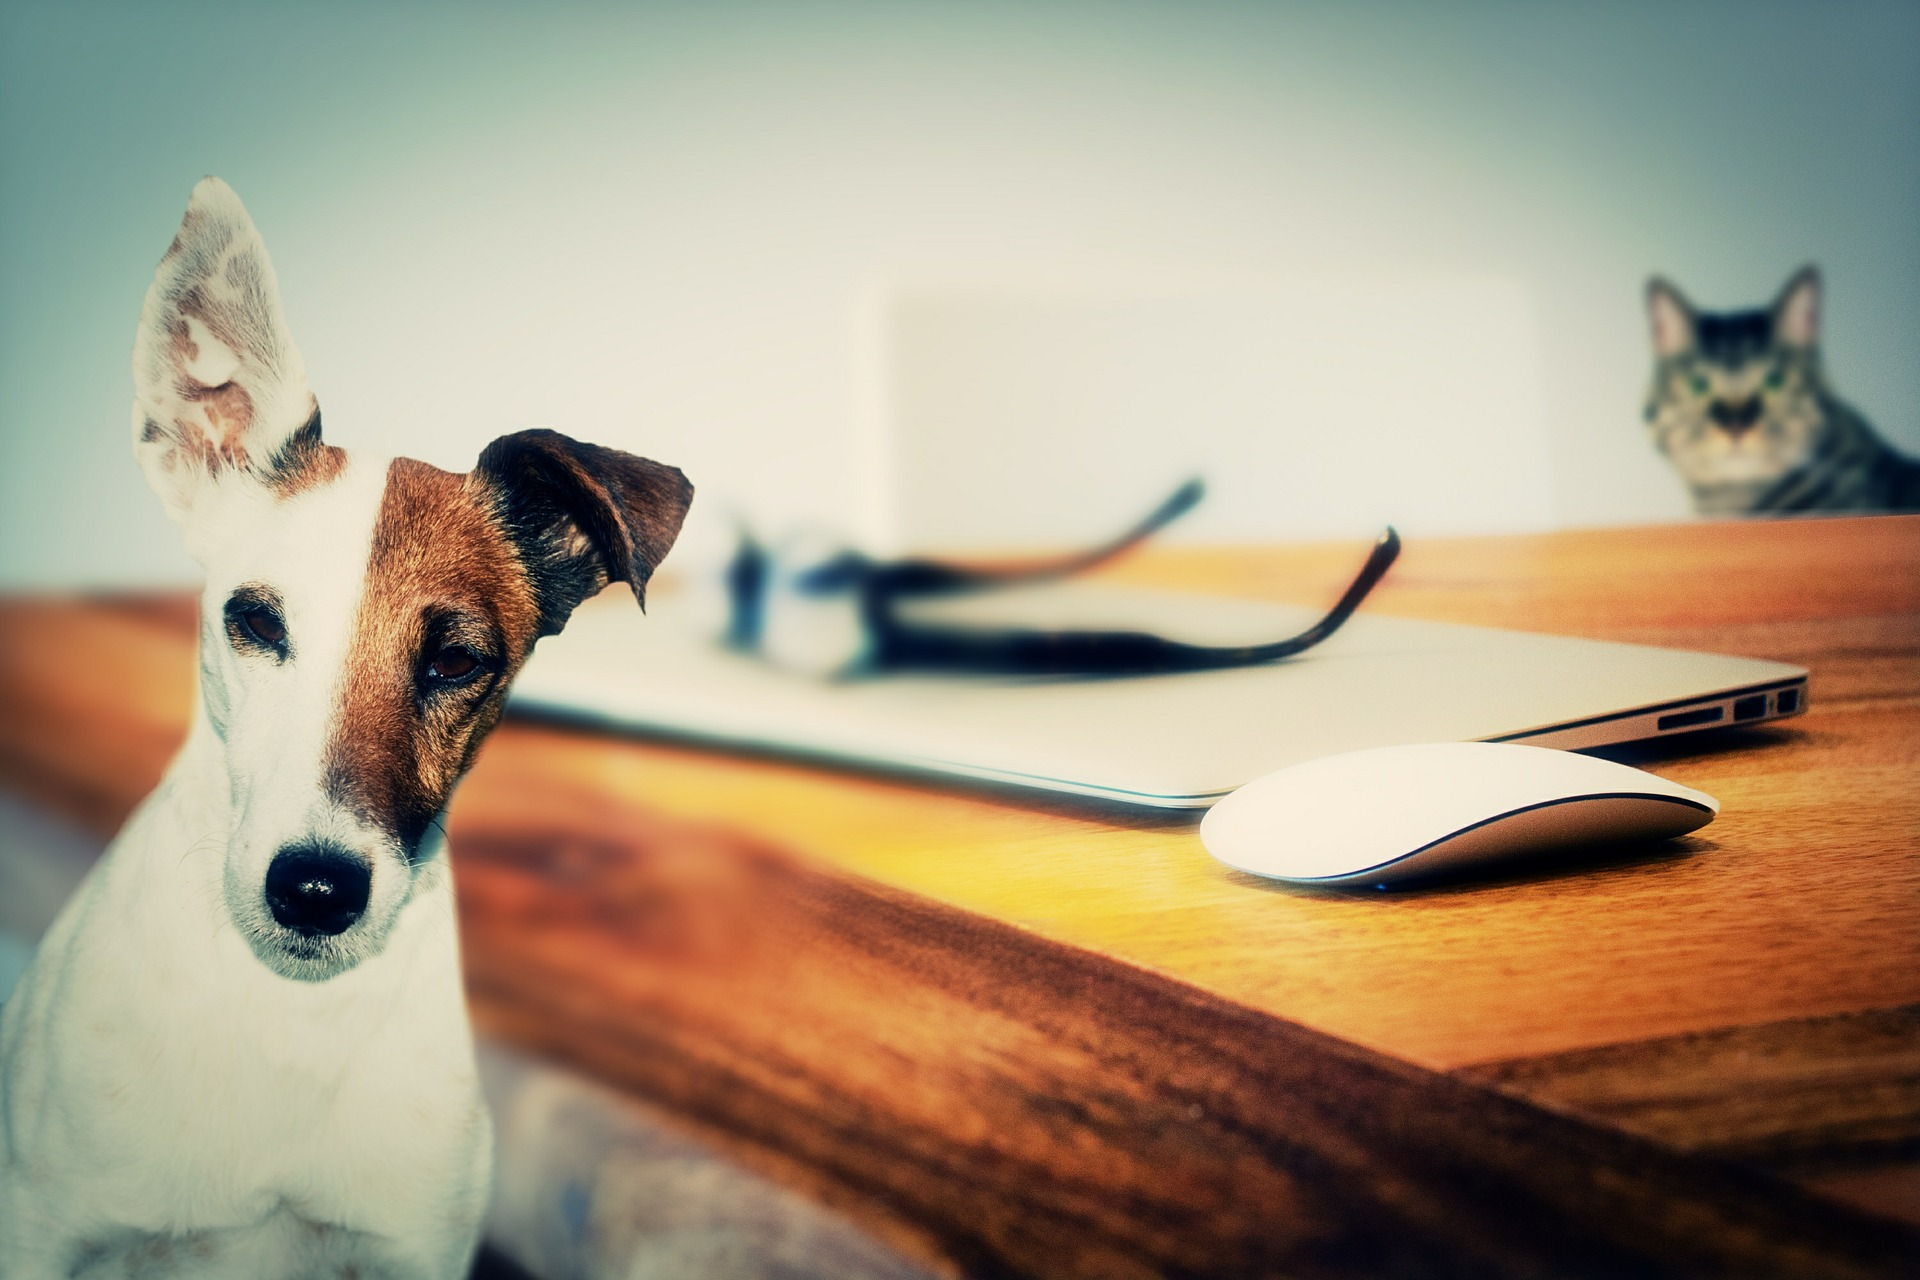 Pet Parents Make Great Home Business Owners